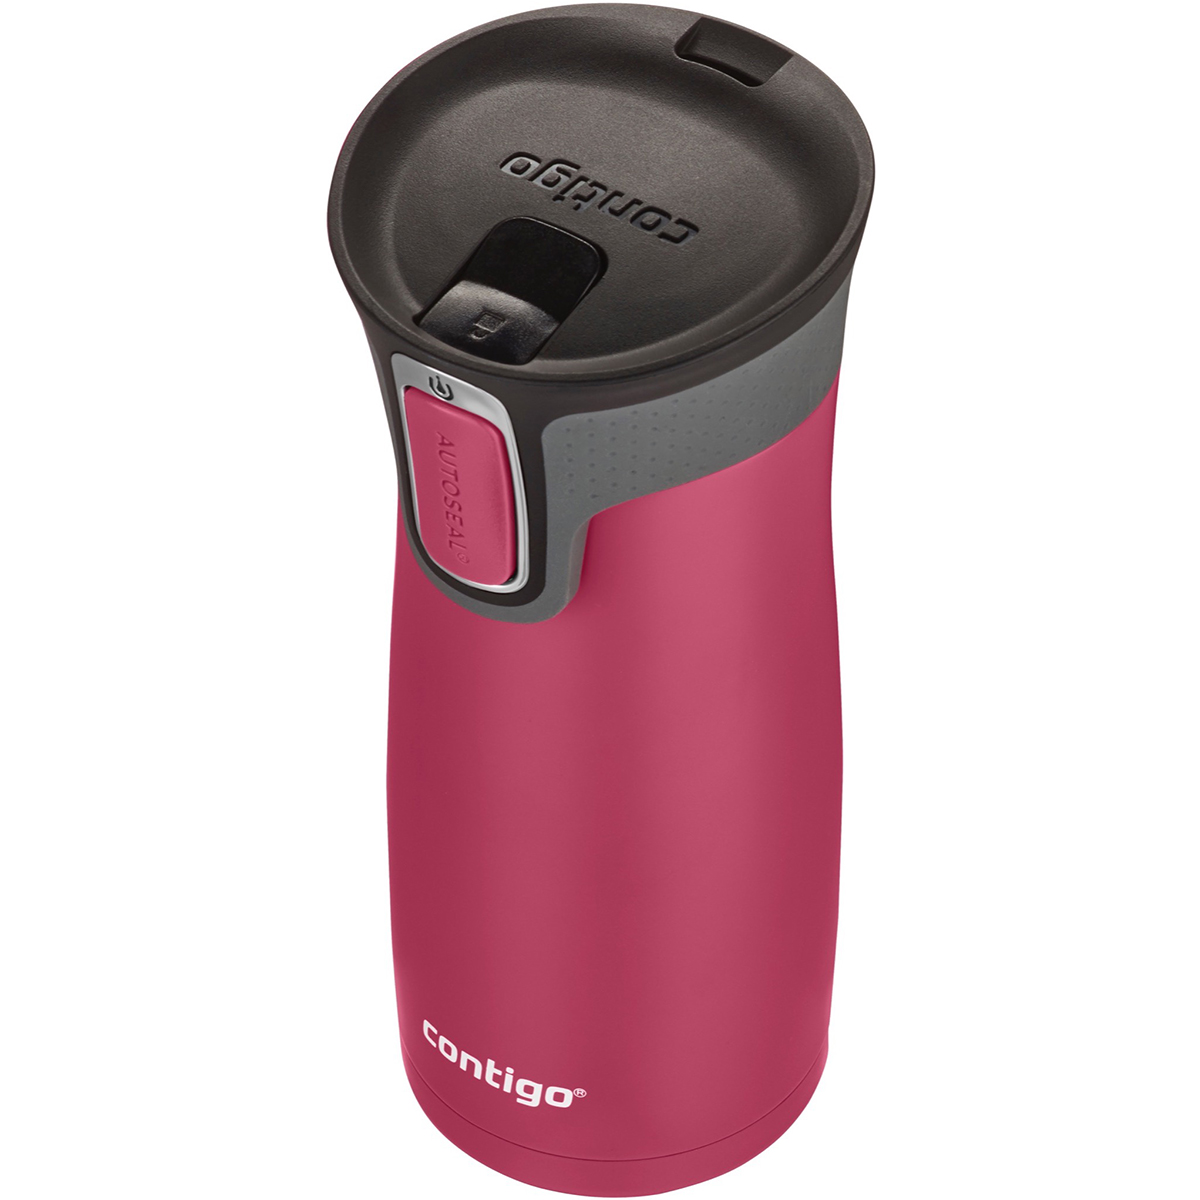 Contigo-16-oz-West-Loop-2-0-AutoSeal-Insulated-Stainless-Steel-Travel-Mug miniatura 25